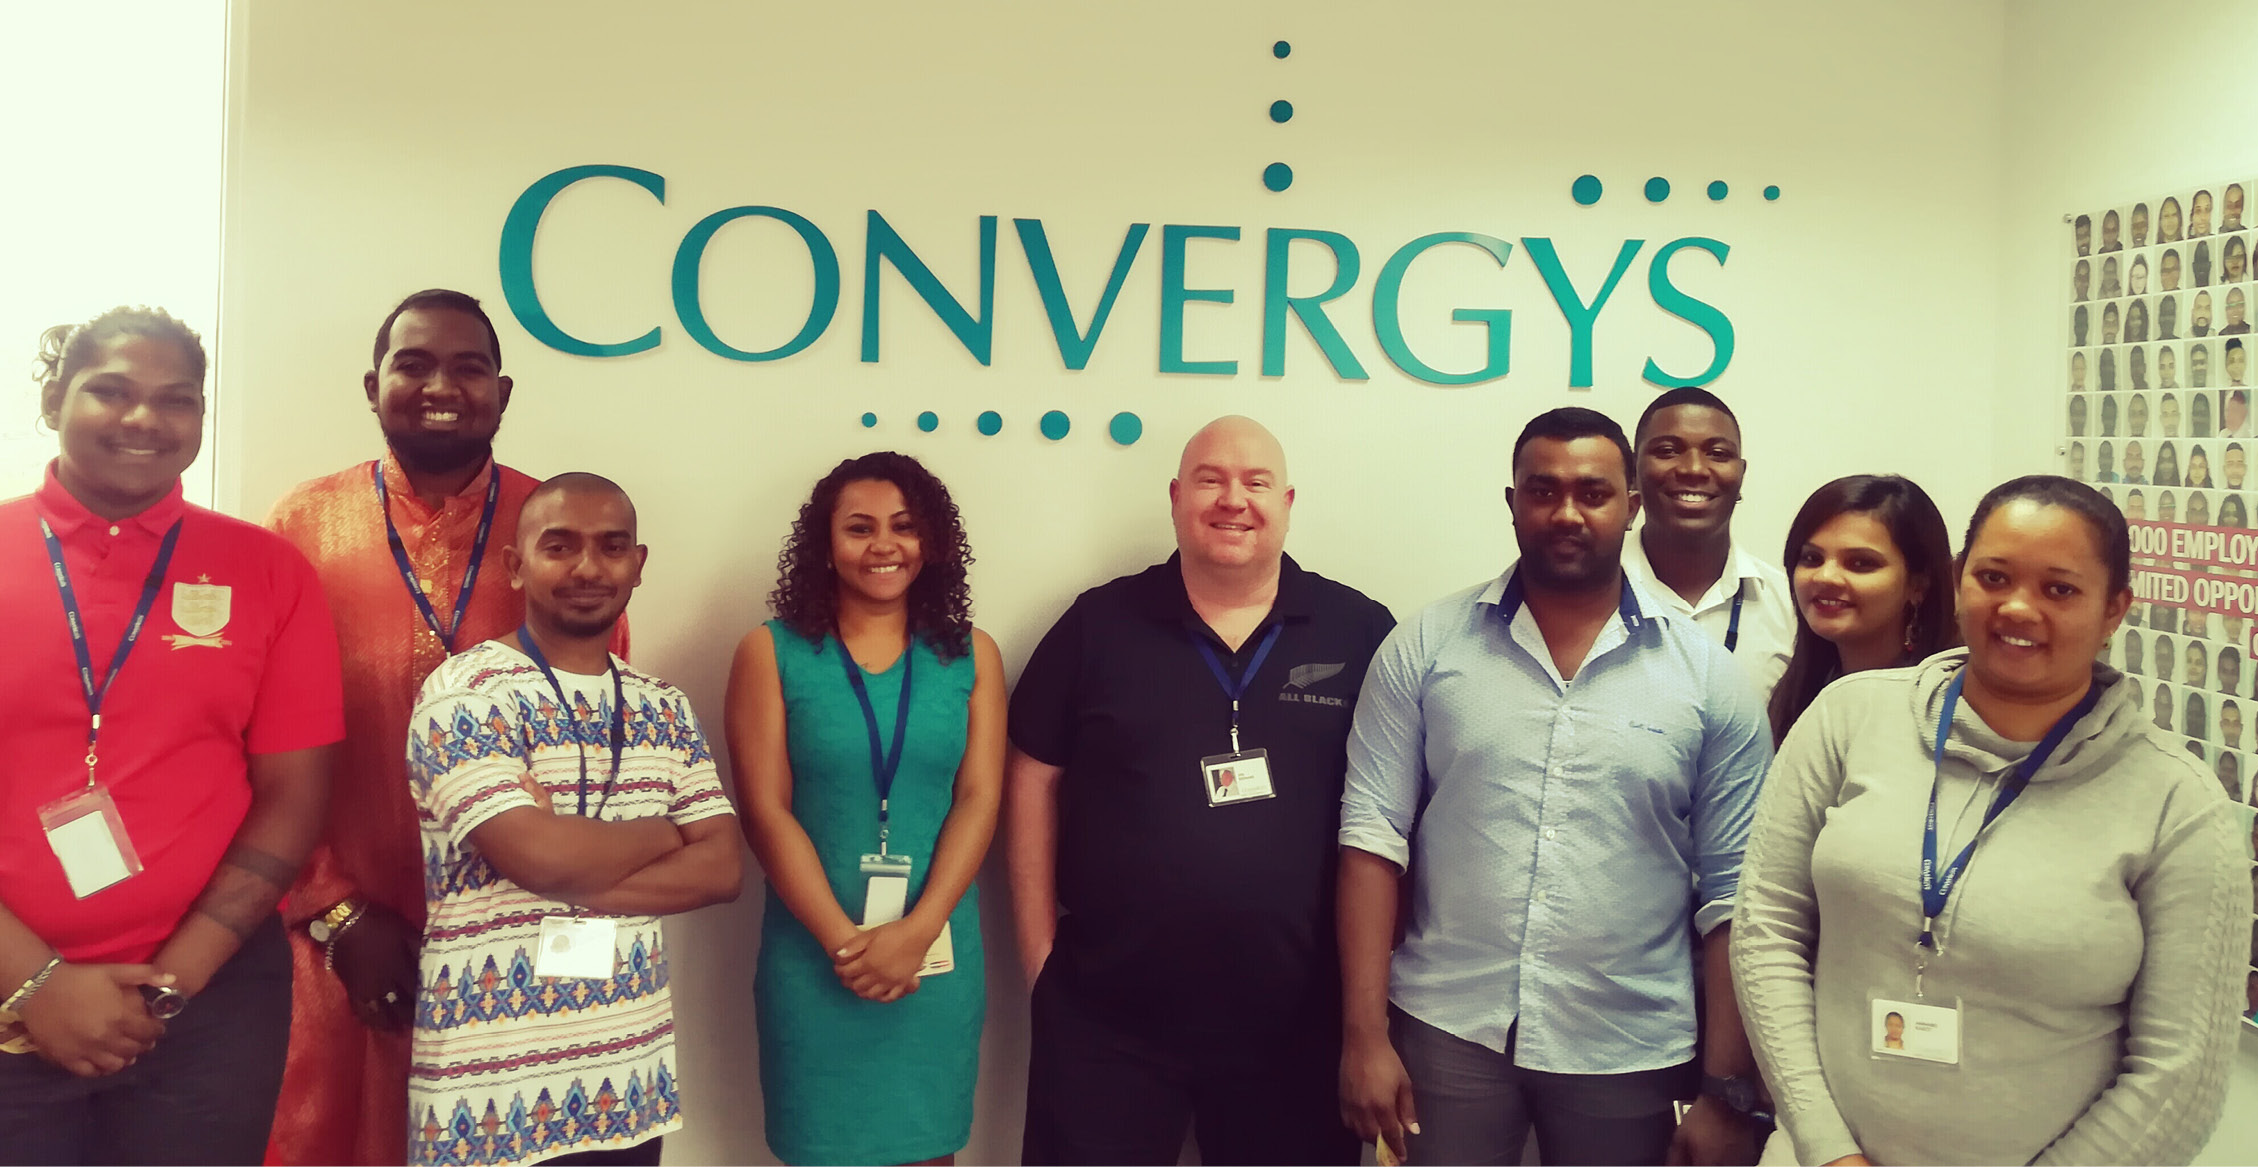 how to get coe from convergys